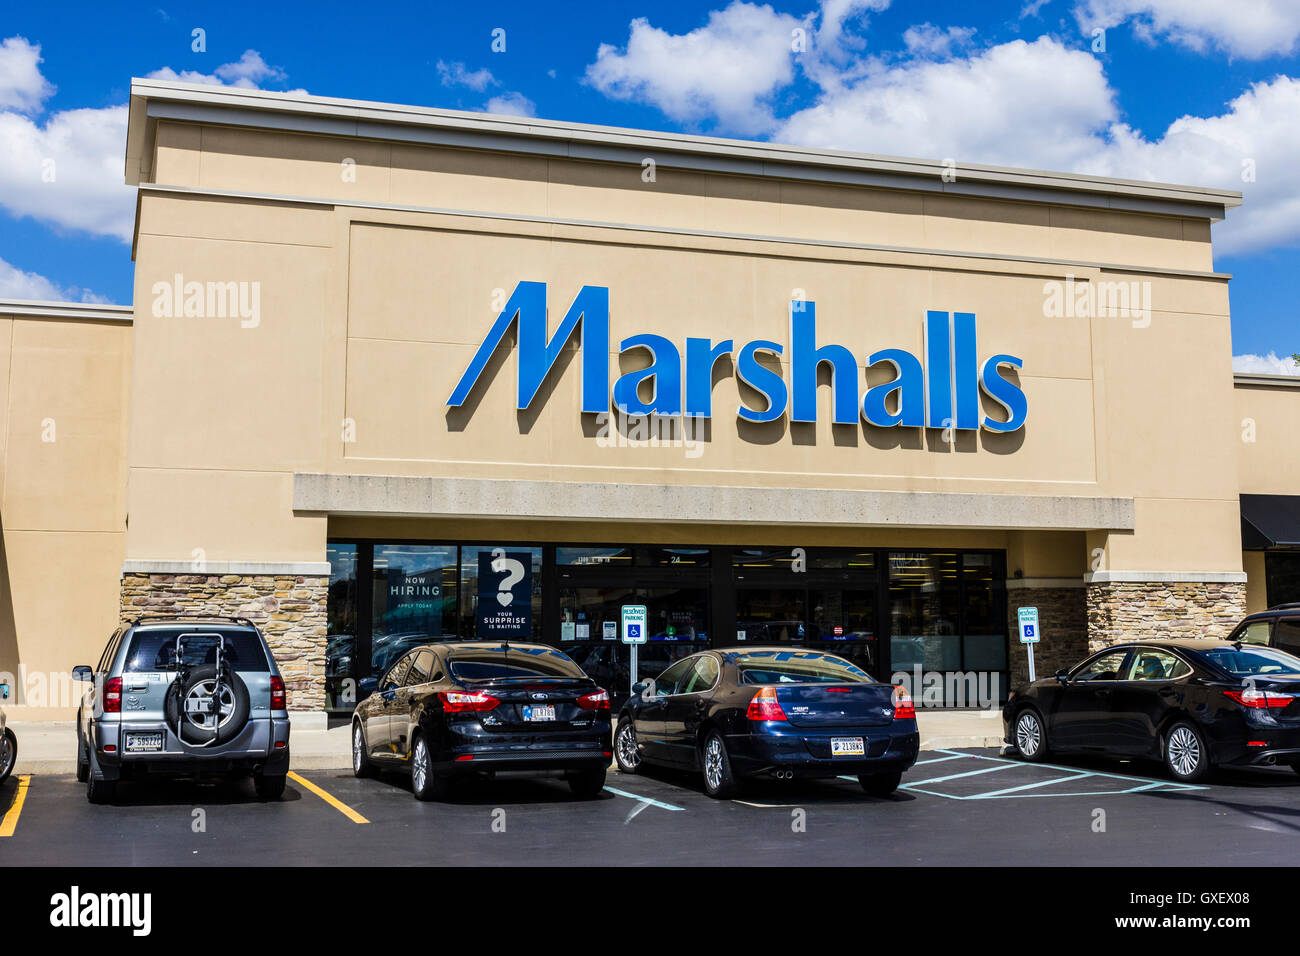 Indianapolis - Circa September 2016: Marshalls Retail Strip Mall Location. Marshalls is a Subsidiary of the TJX - Stock Image